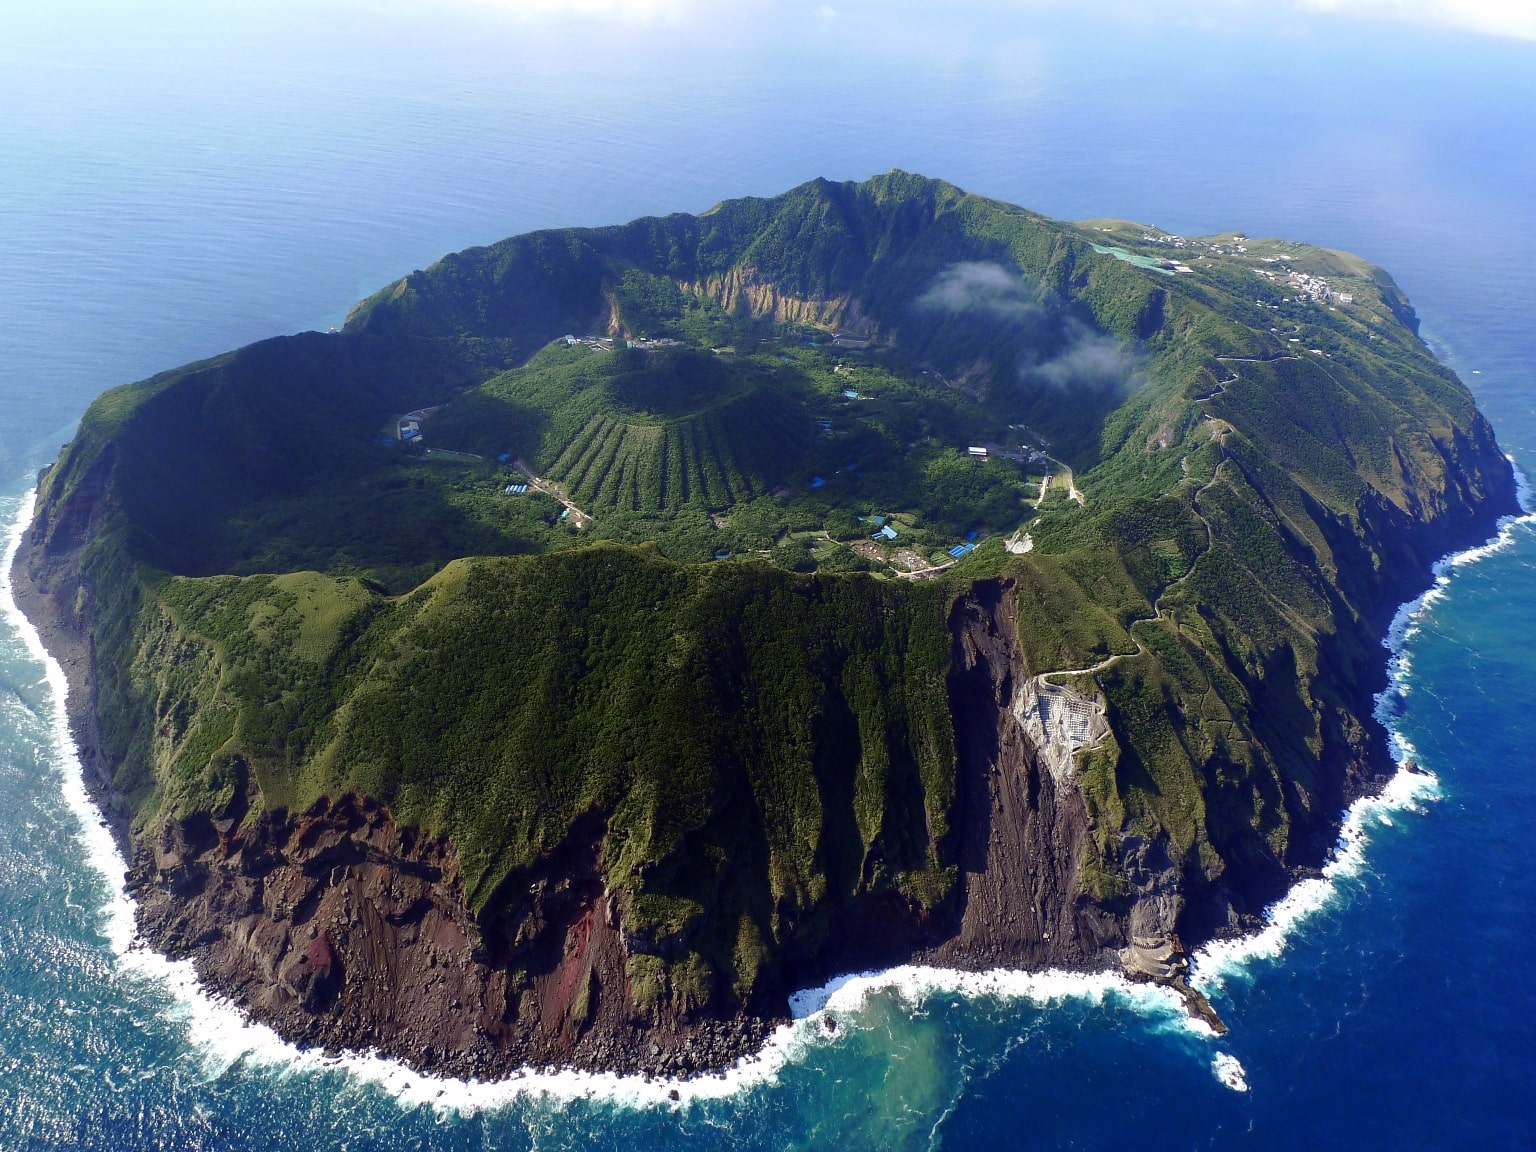 aogashima-tokyos-secret-island-paradise-secret-world